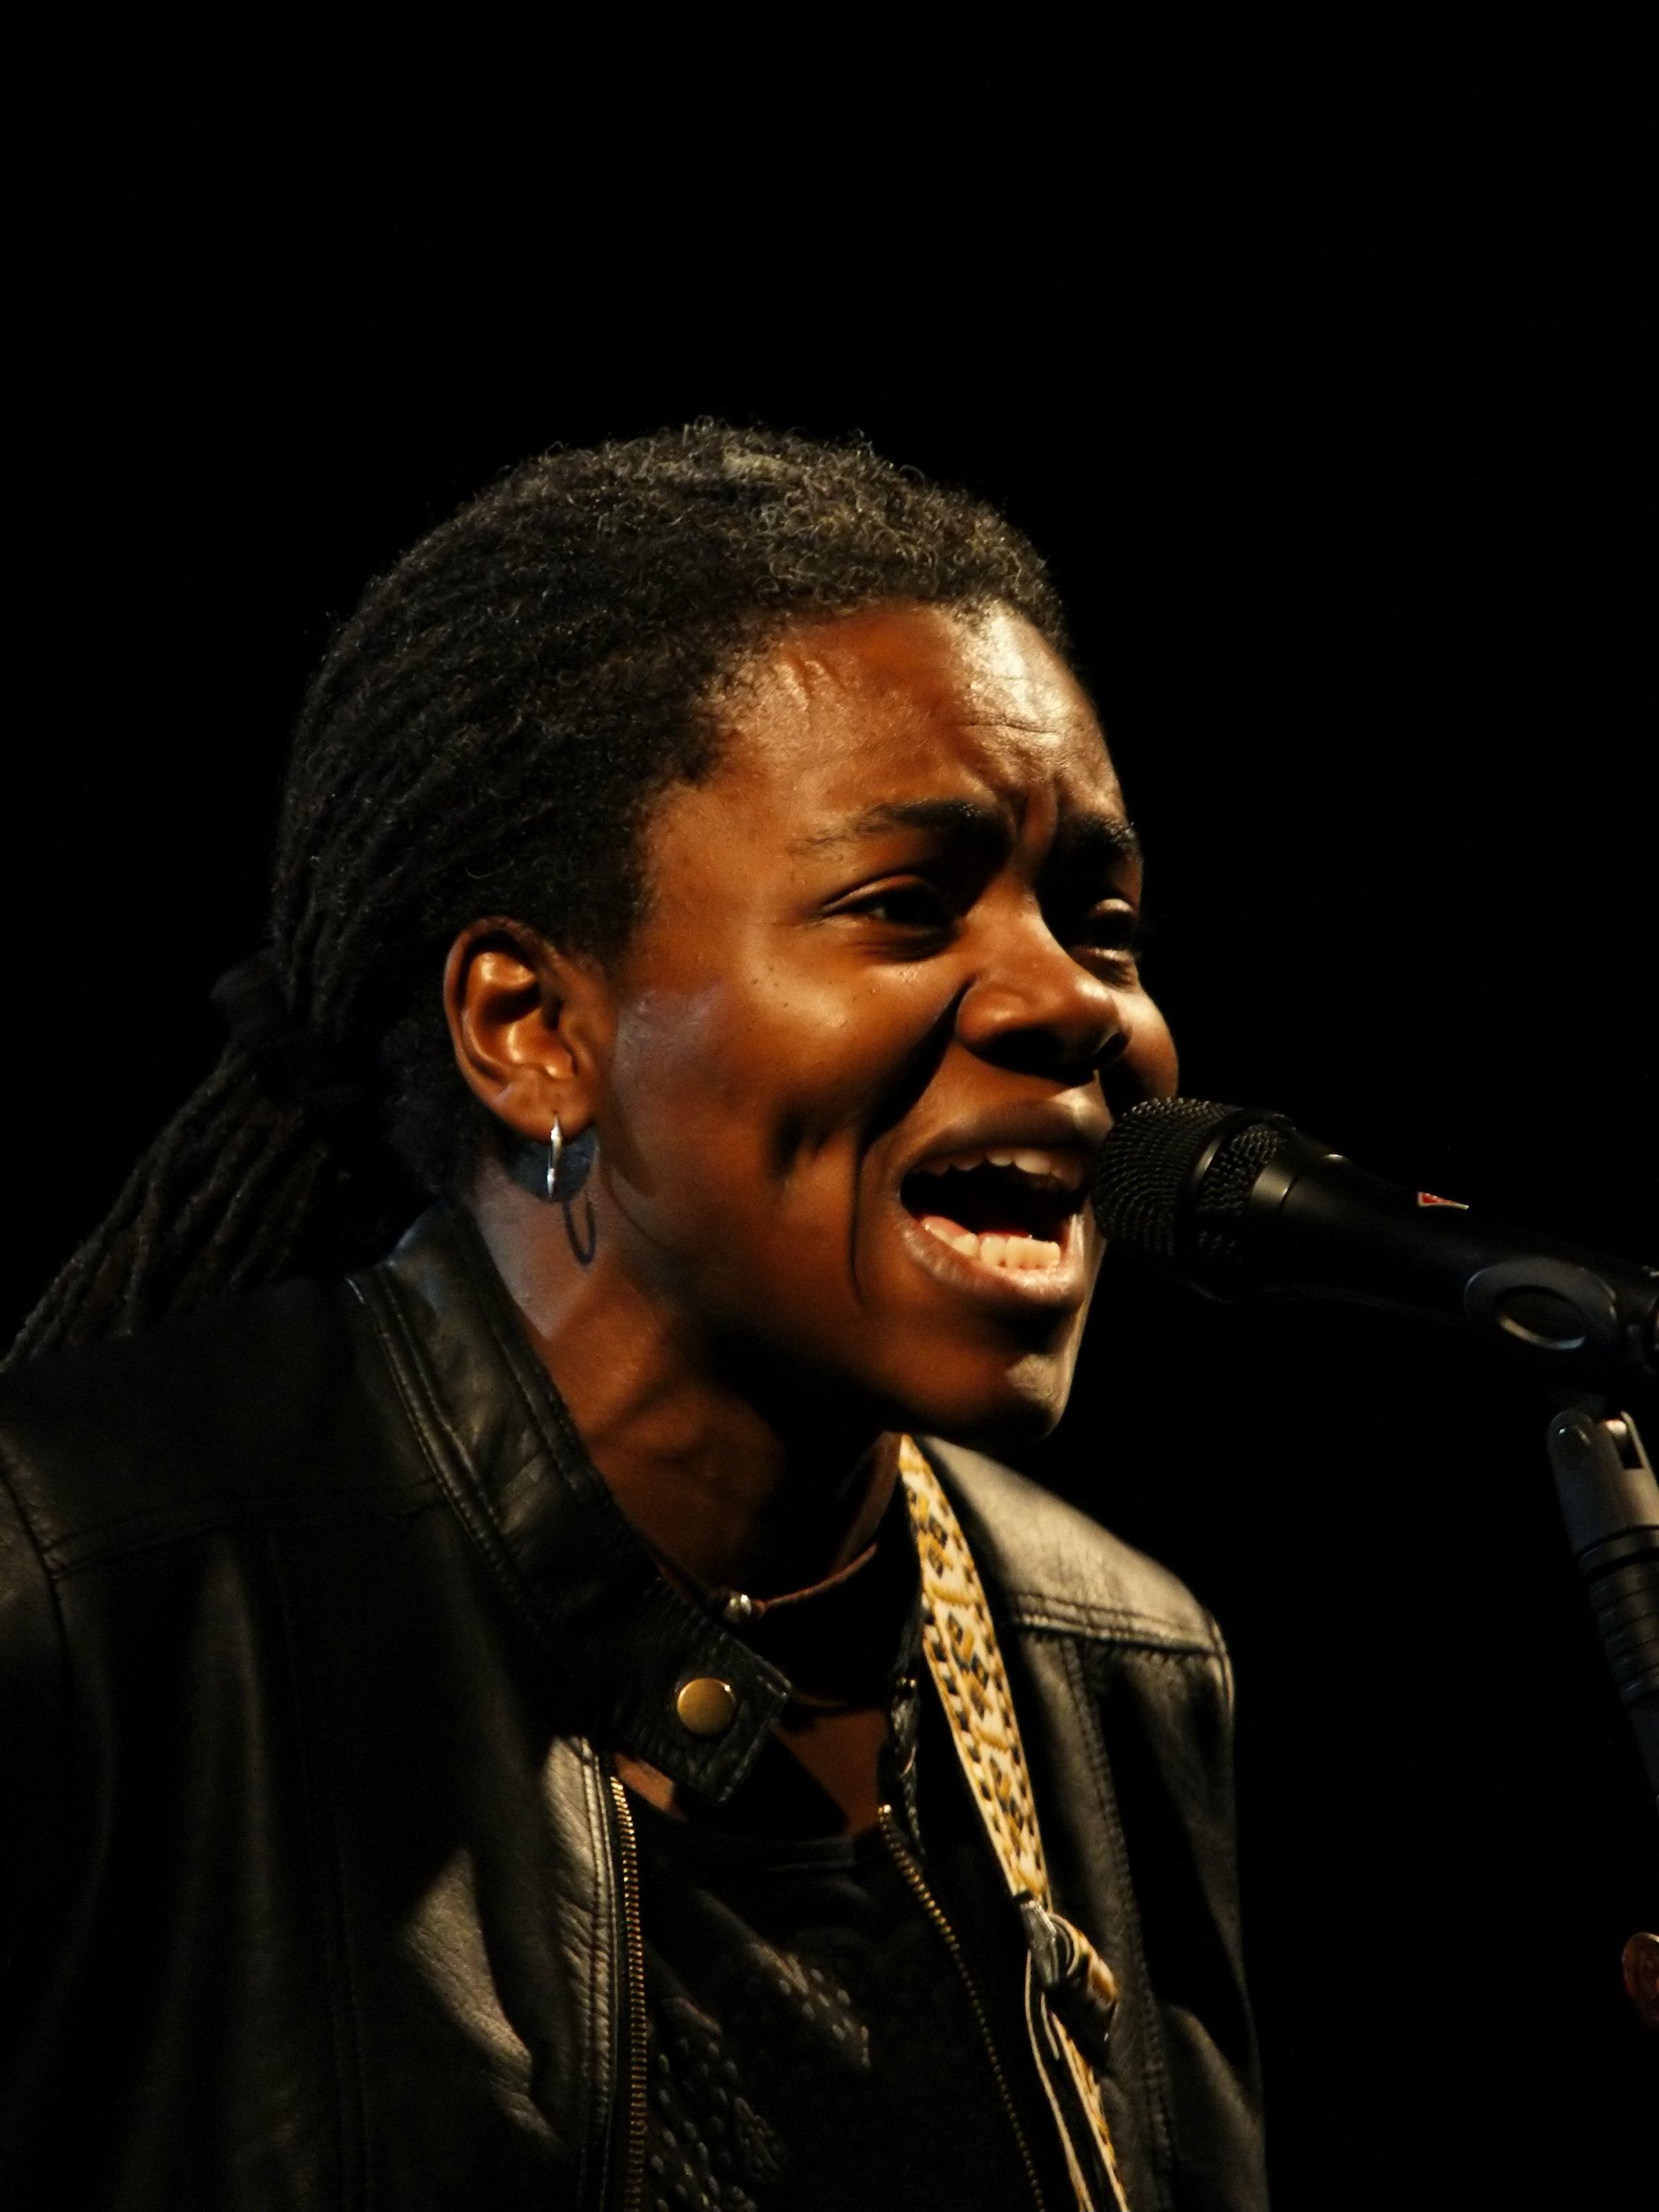 Tracy Chapman at the 2009 Cactus Festival in Bruges, Belgium on 10 July 2009 | Photo: Wikimedia Commons By © Hans Hillewaert, CC BY-SA 4.0